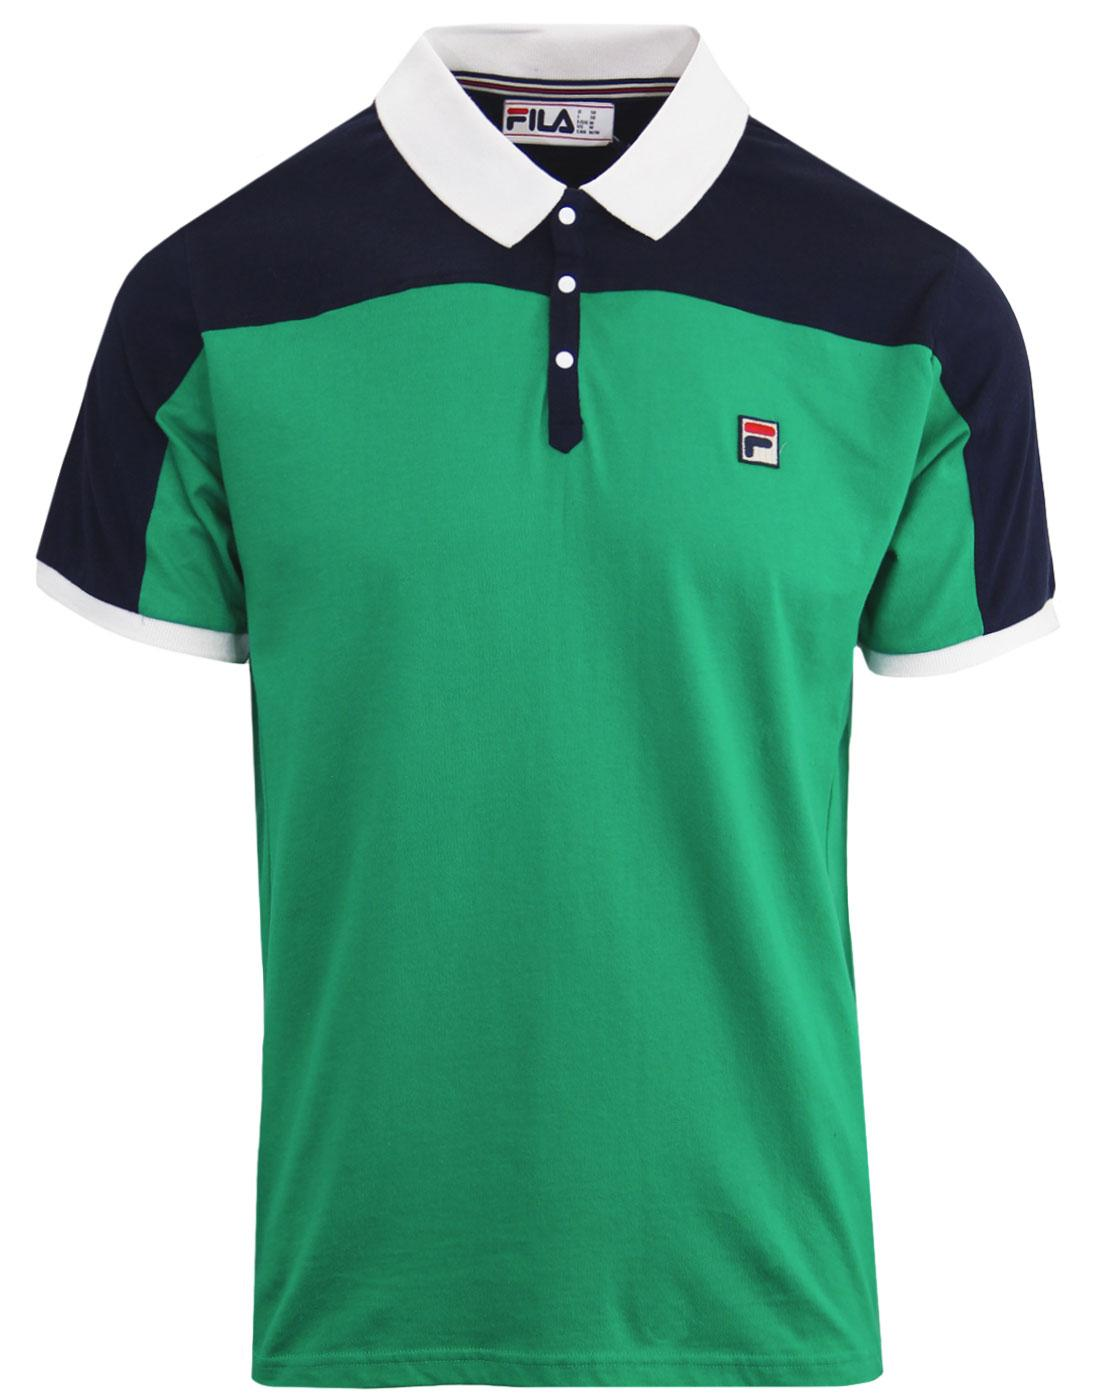 Mivvi FILA VINTAGE Mens 80s Tennis Polo JELLY BEAN